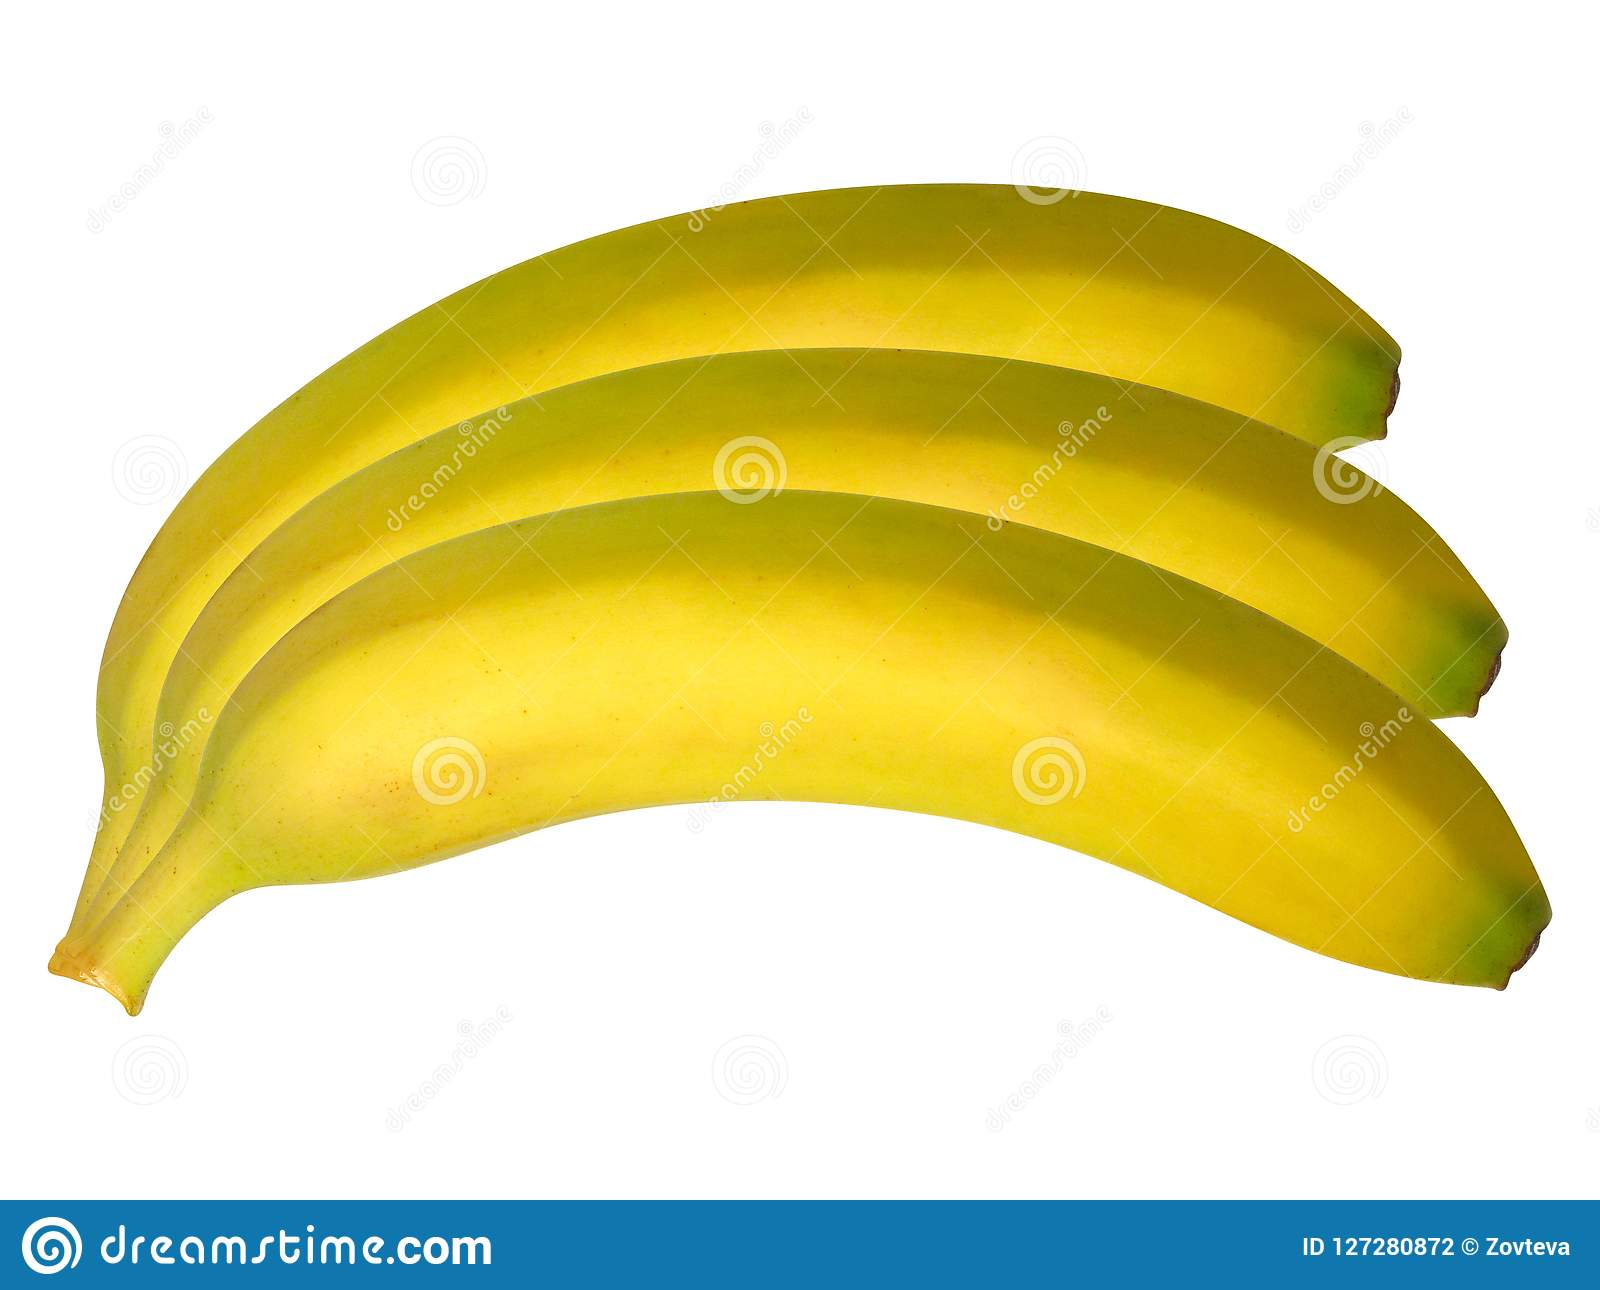 Bananas isolated on the white